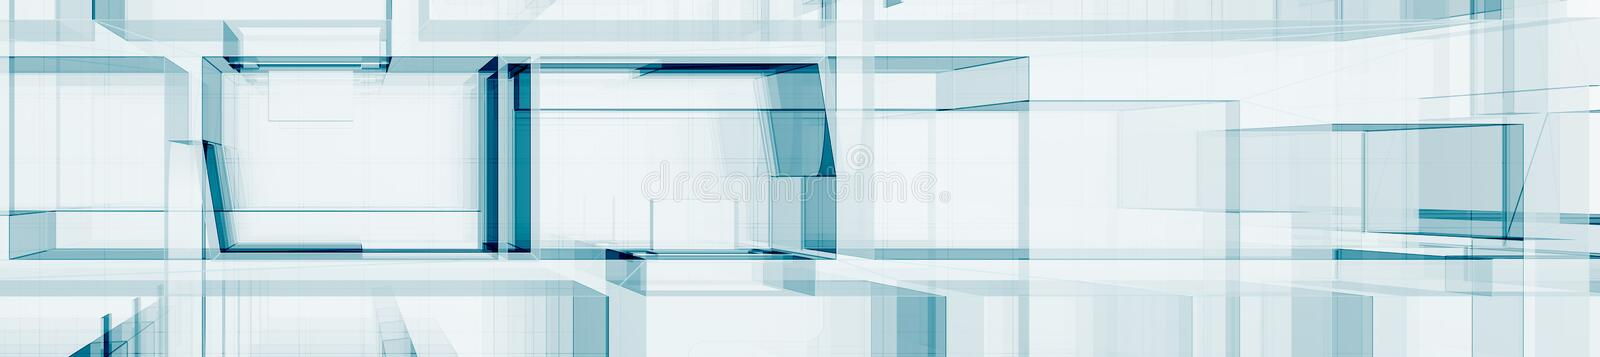 Abstract blue architecture 3d rendering stock illustration